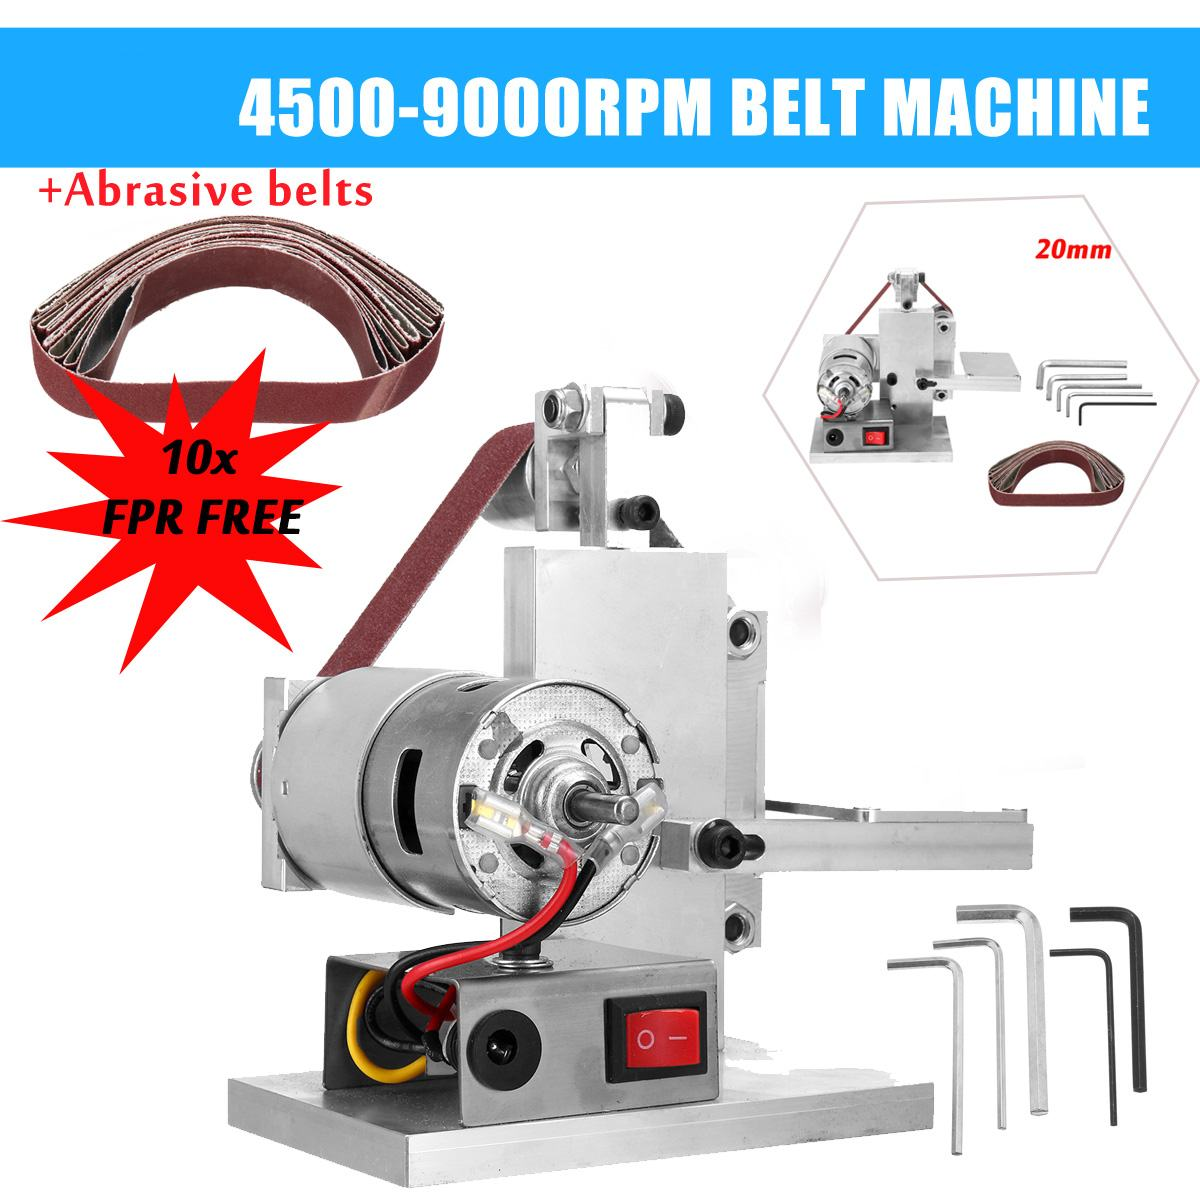 Doersupp 110-240V DIY Mini Belt Sander Knife Edge Sharpener Grinding Polishing Machine 60/80/120/150/180/240/320/400/600/800mesh